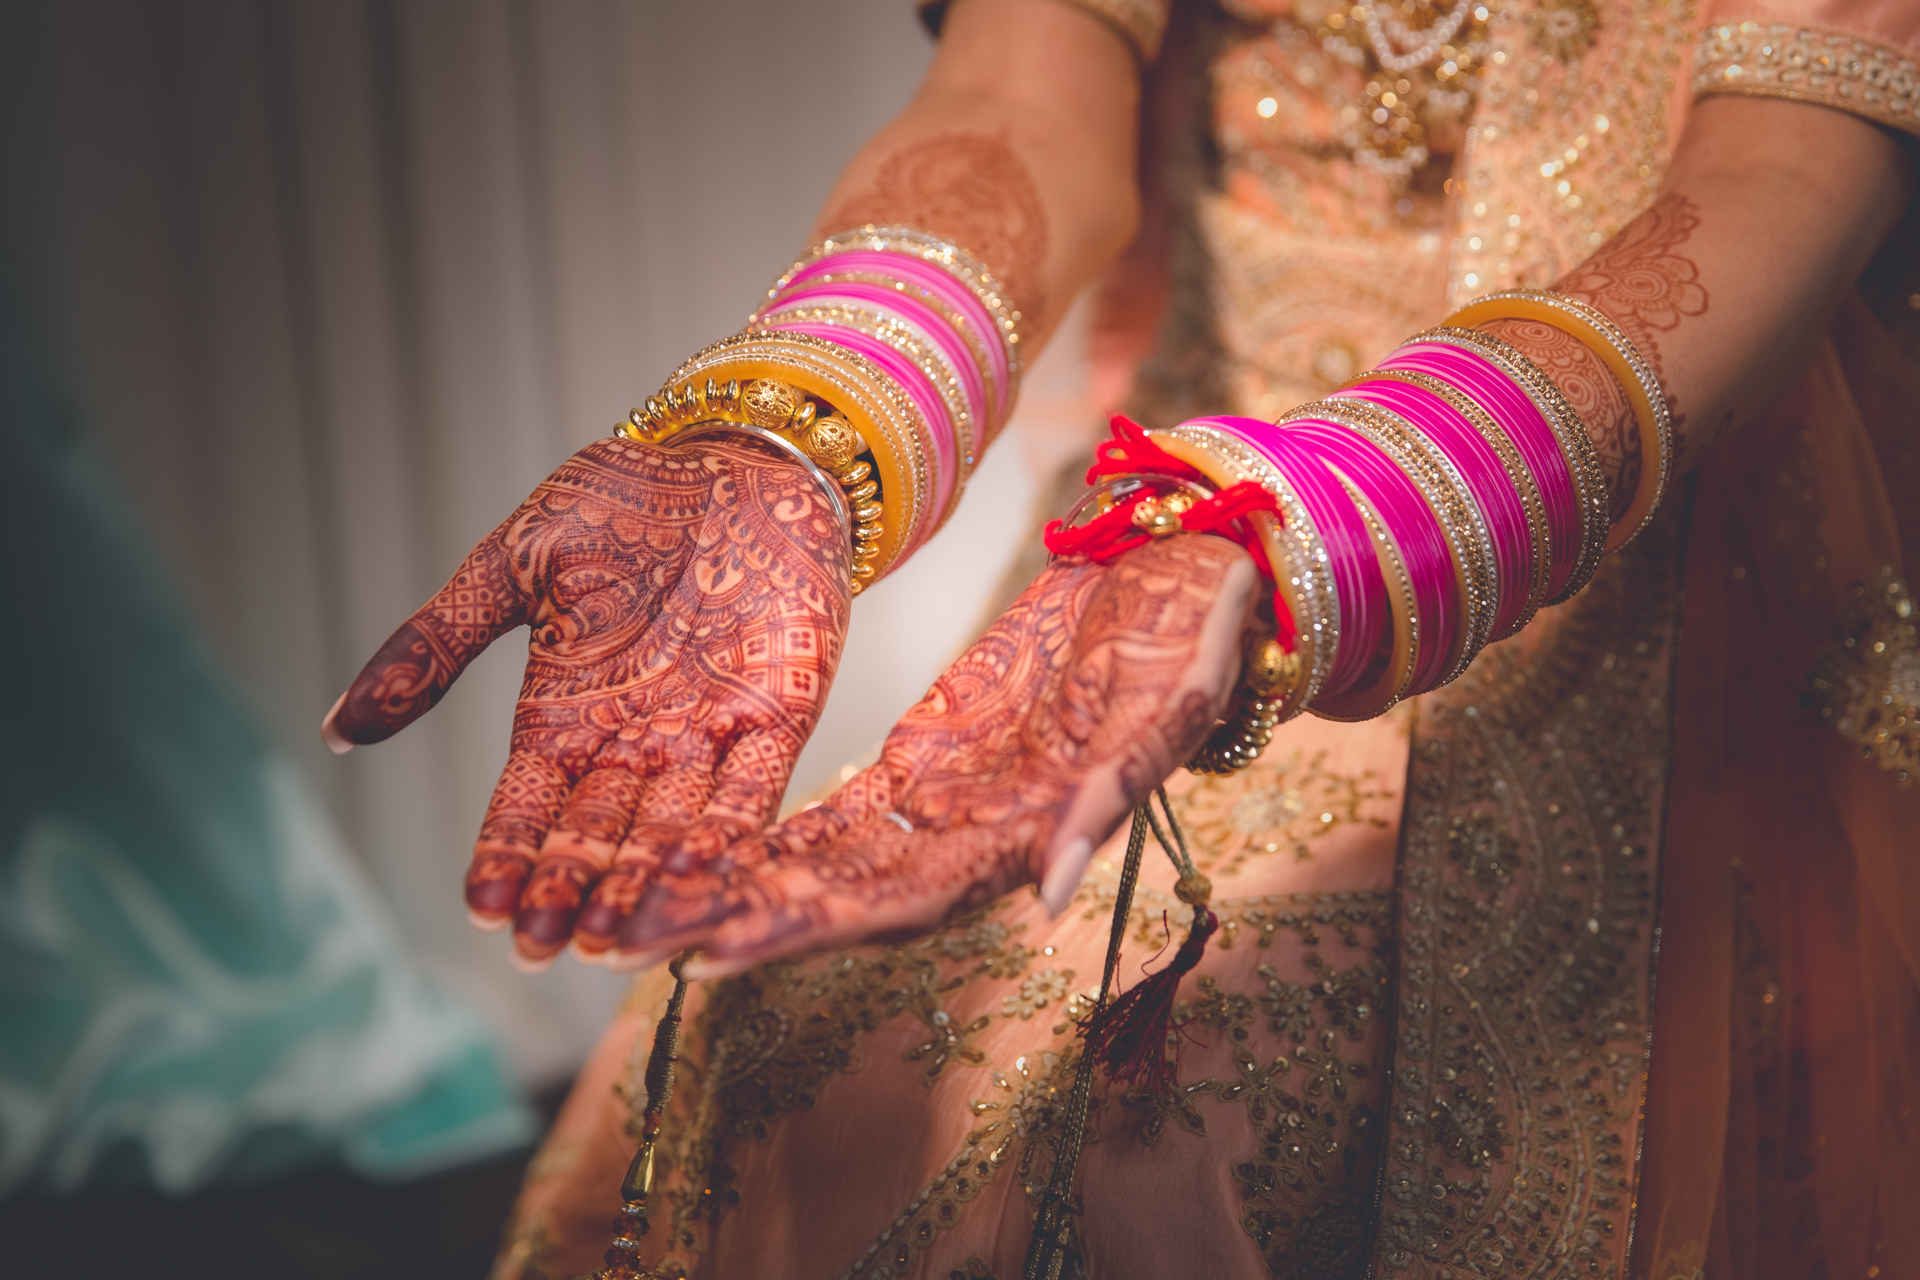 epic_sky_pictures_wedding_photography_henna_photo_services_pictures_company_bangles_mississauga_oakville_hindu_sikh_stoney_creek